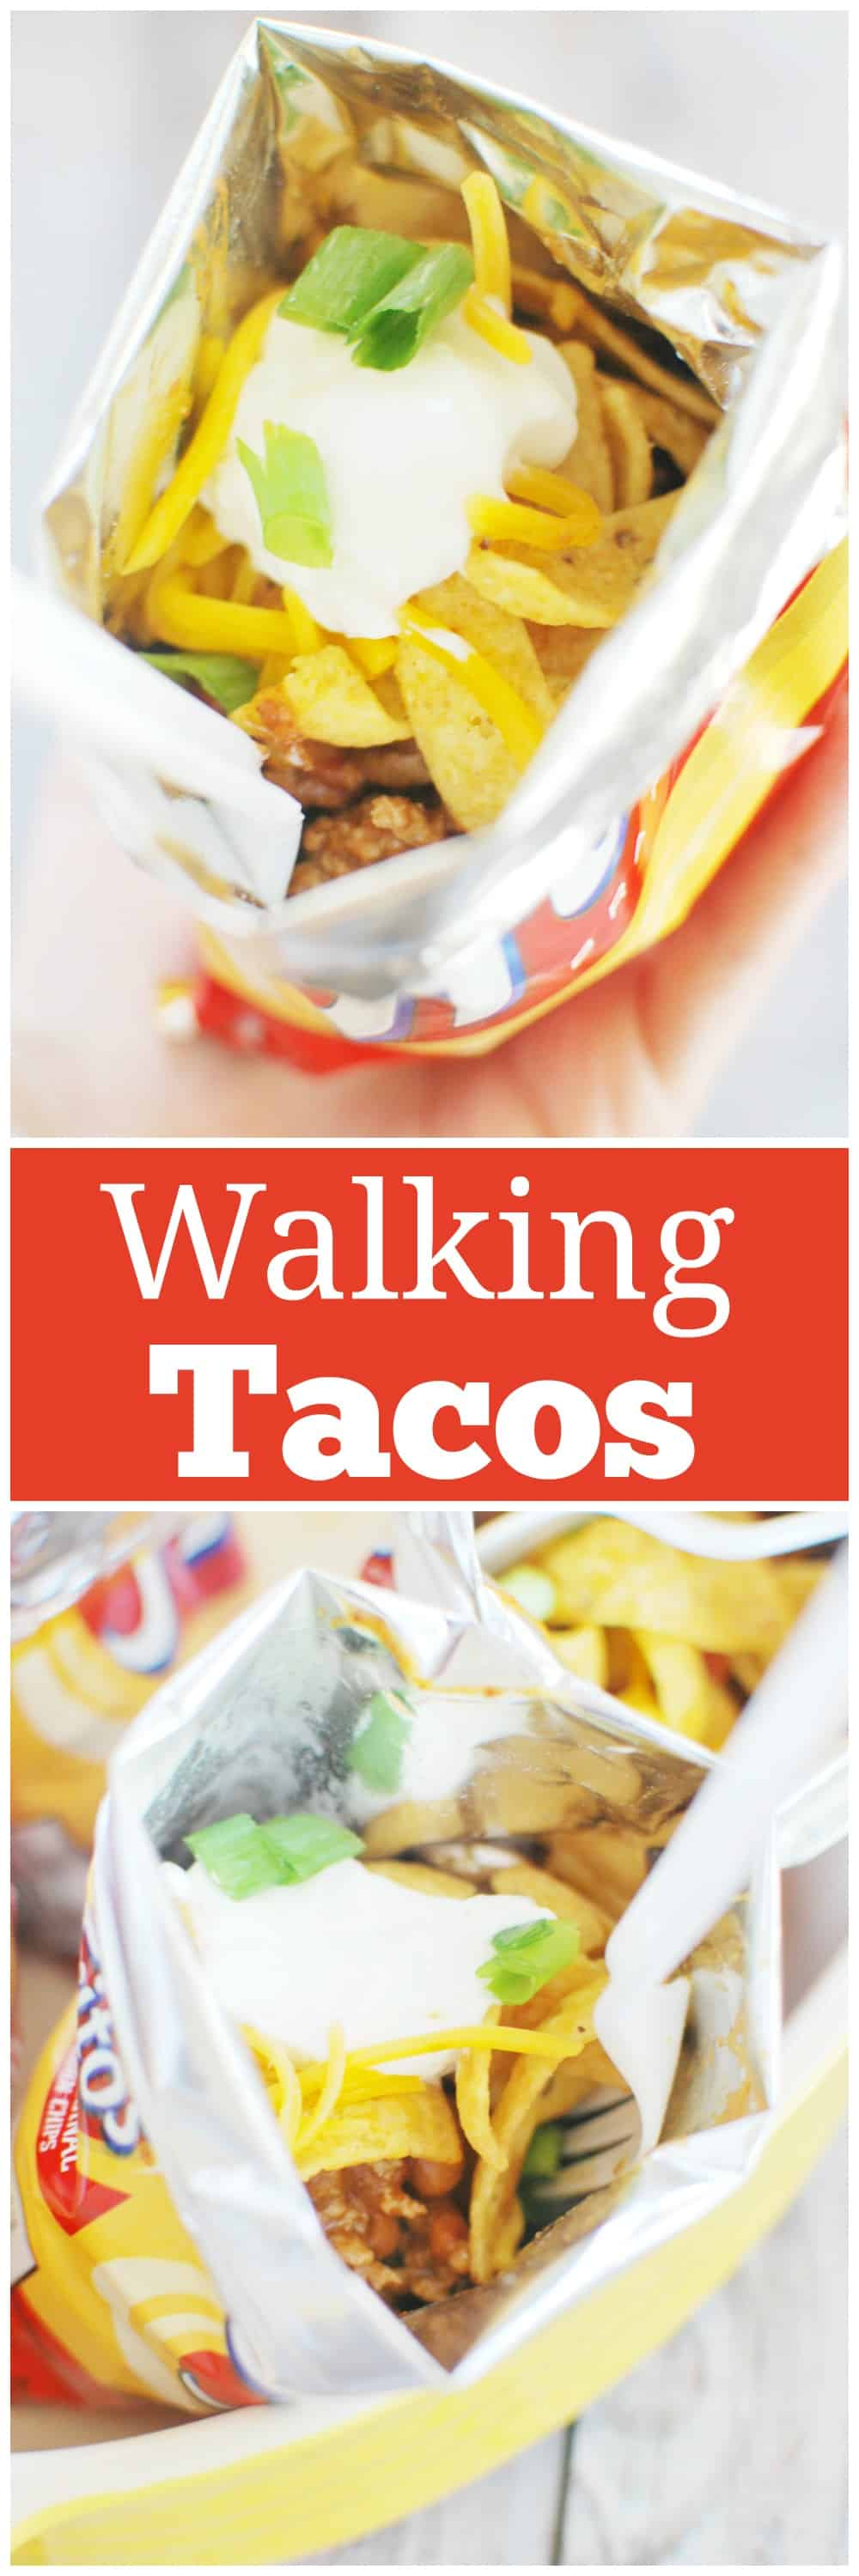 Walking Tacos - Fritos, taco meat, beans, cheese, and sour cream layered in the chip bag for an easy dinner idea! Kids love these!